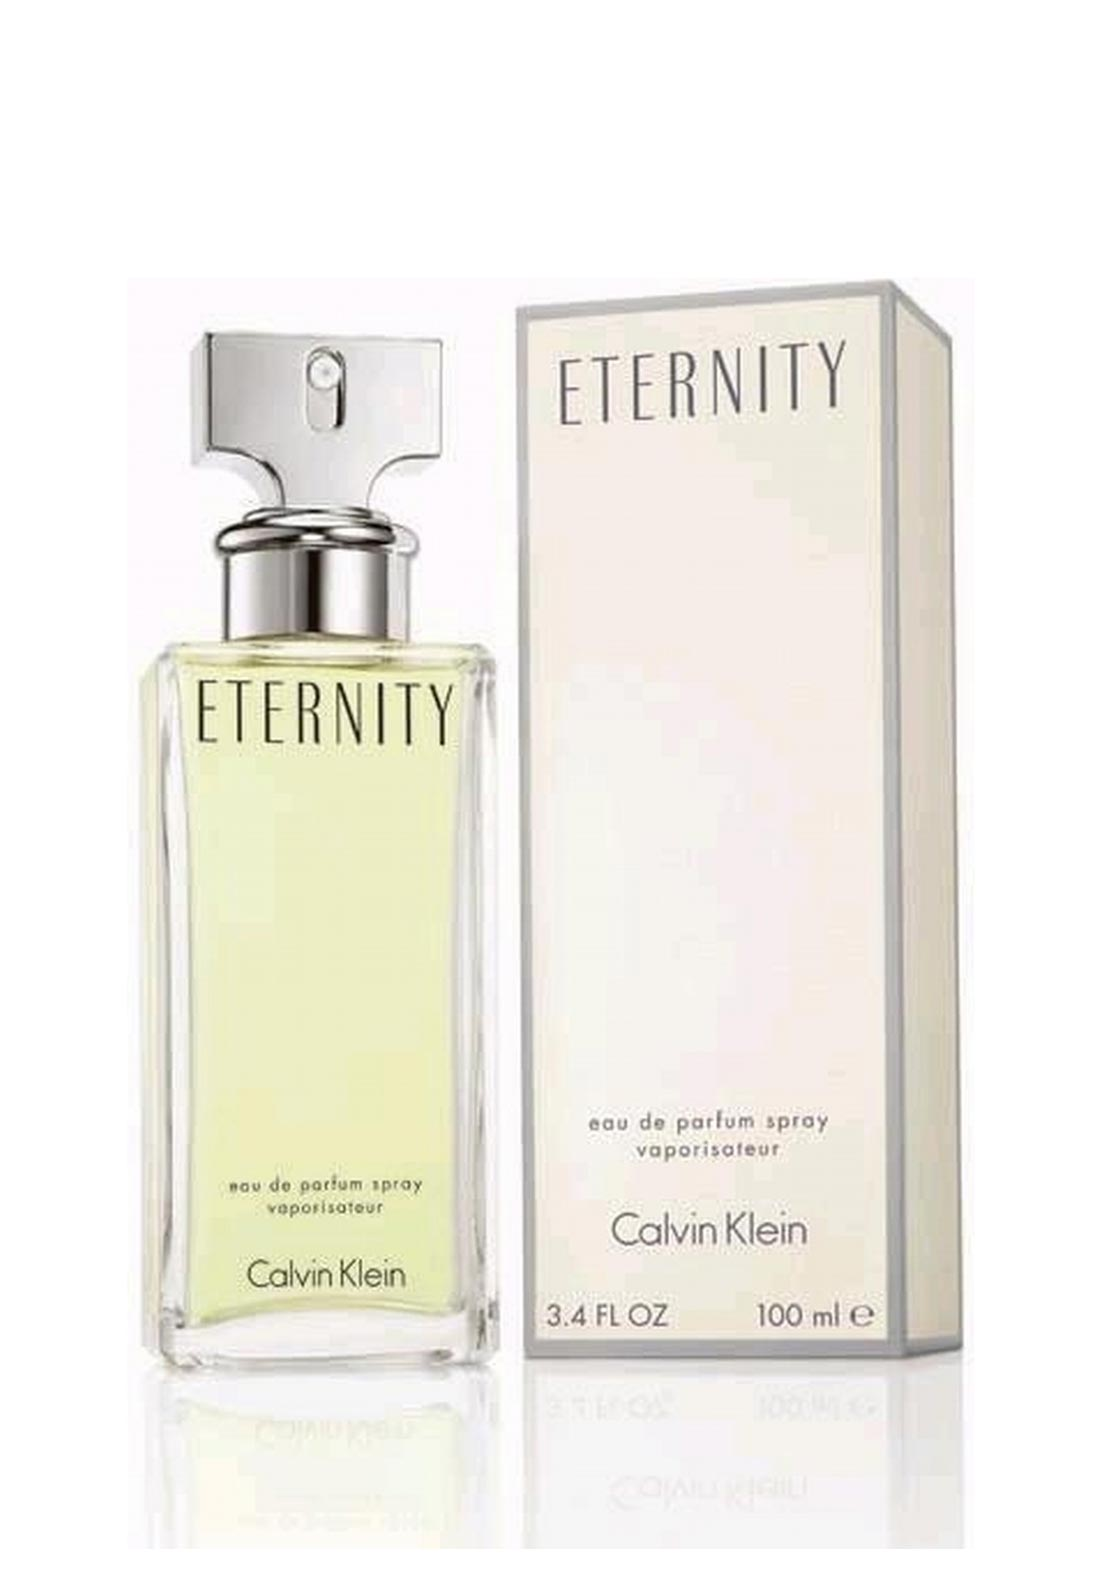 Calvin Klein Eternity for Woman Eau De Parfum Spray, 100ml